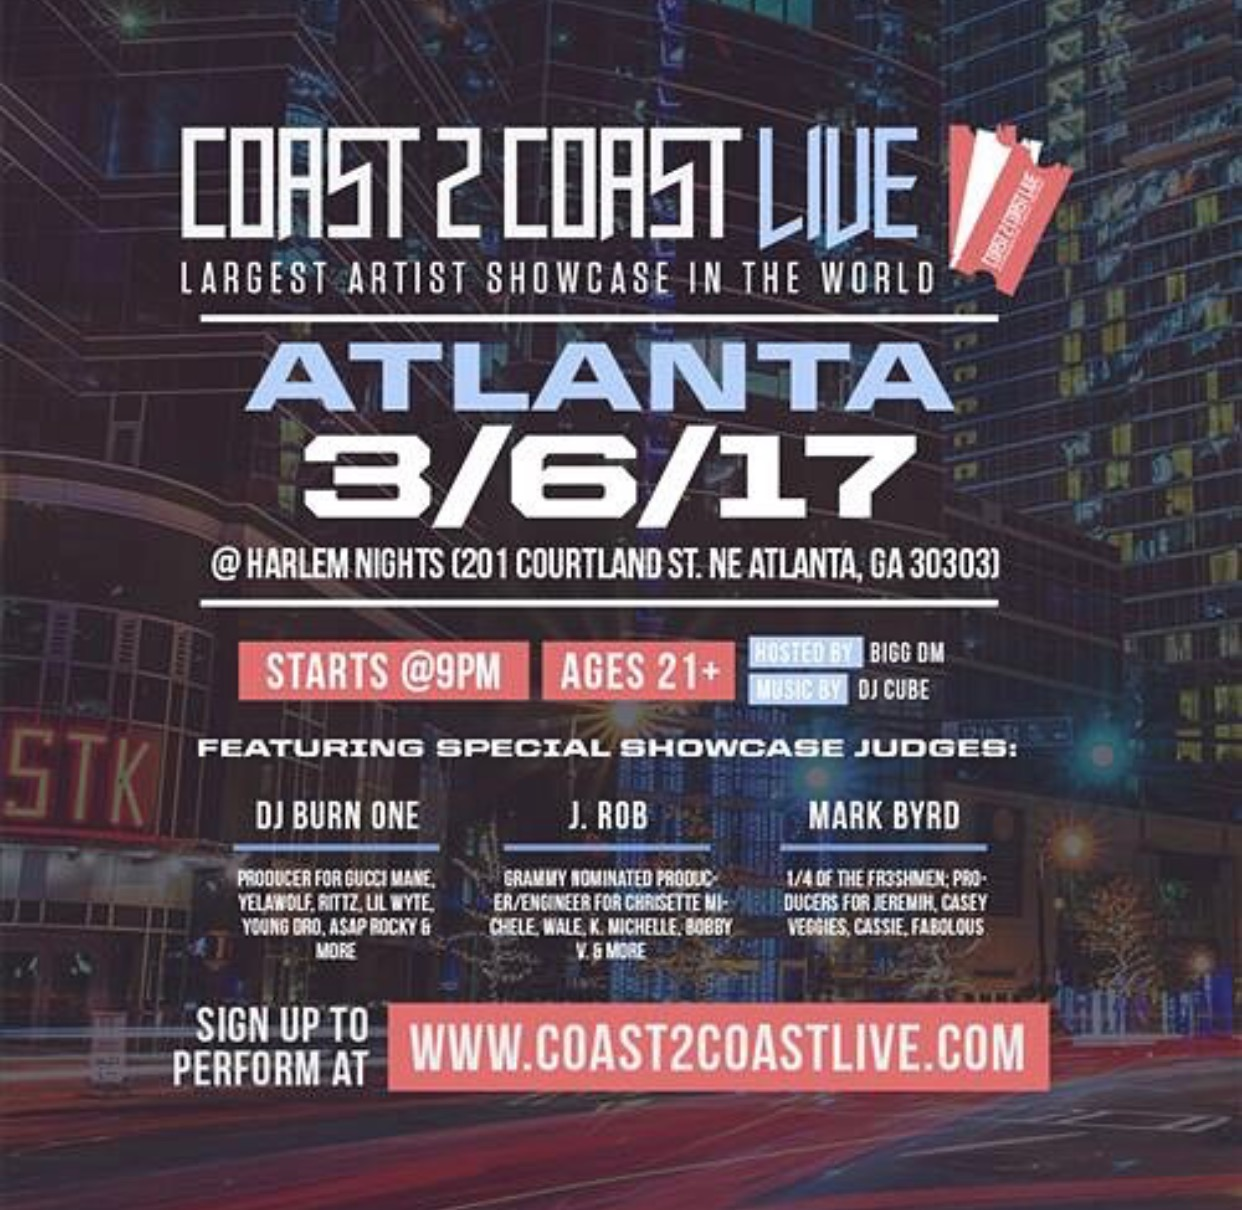 (March 6th) Coast 2 Coast LIVE in Atlanta,GA